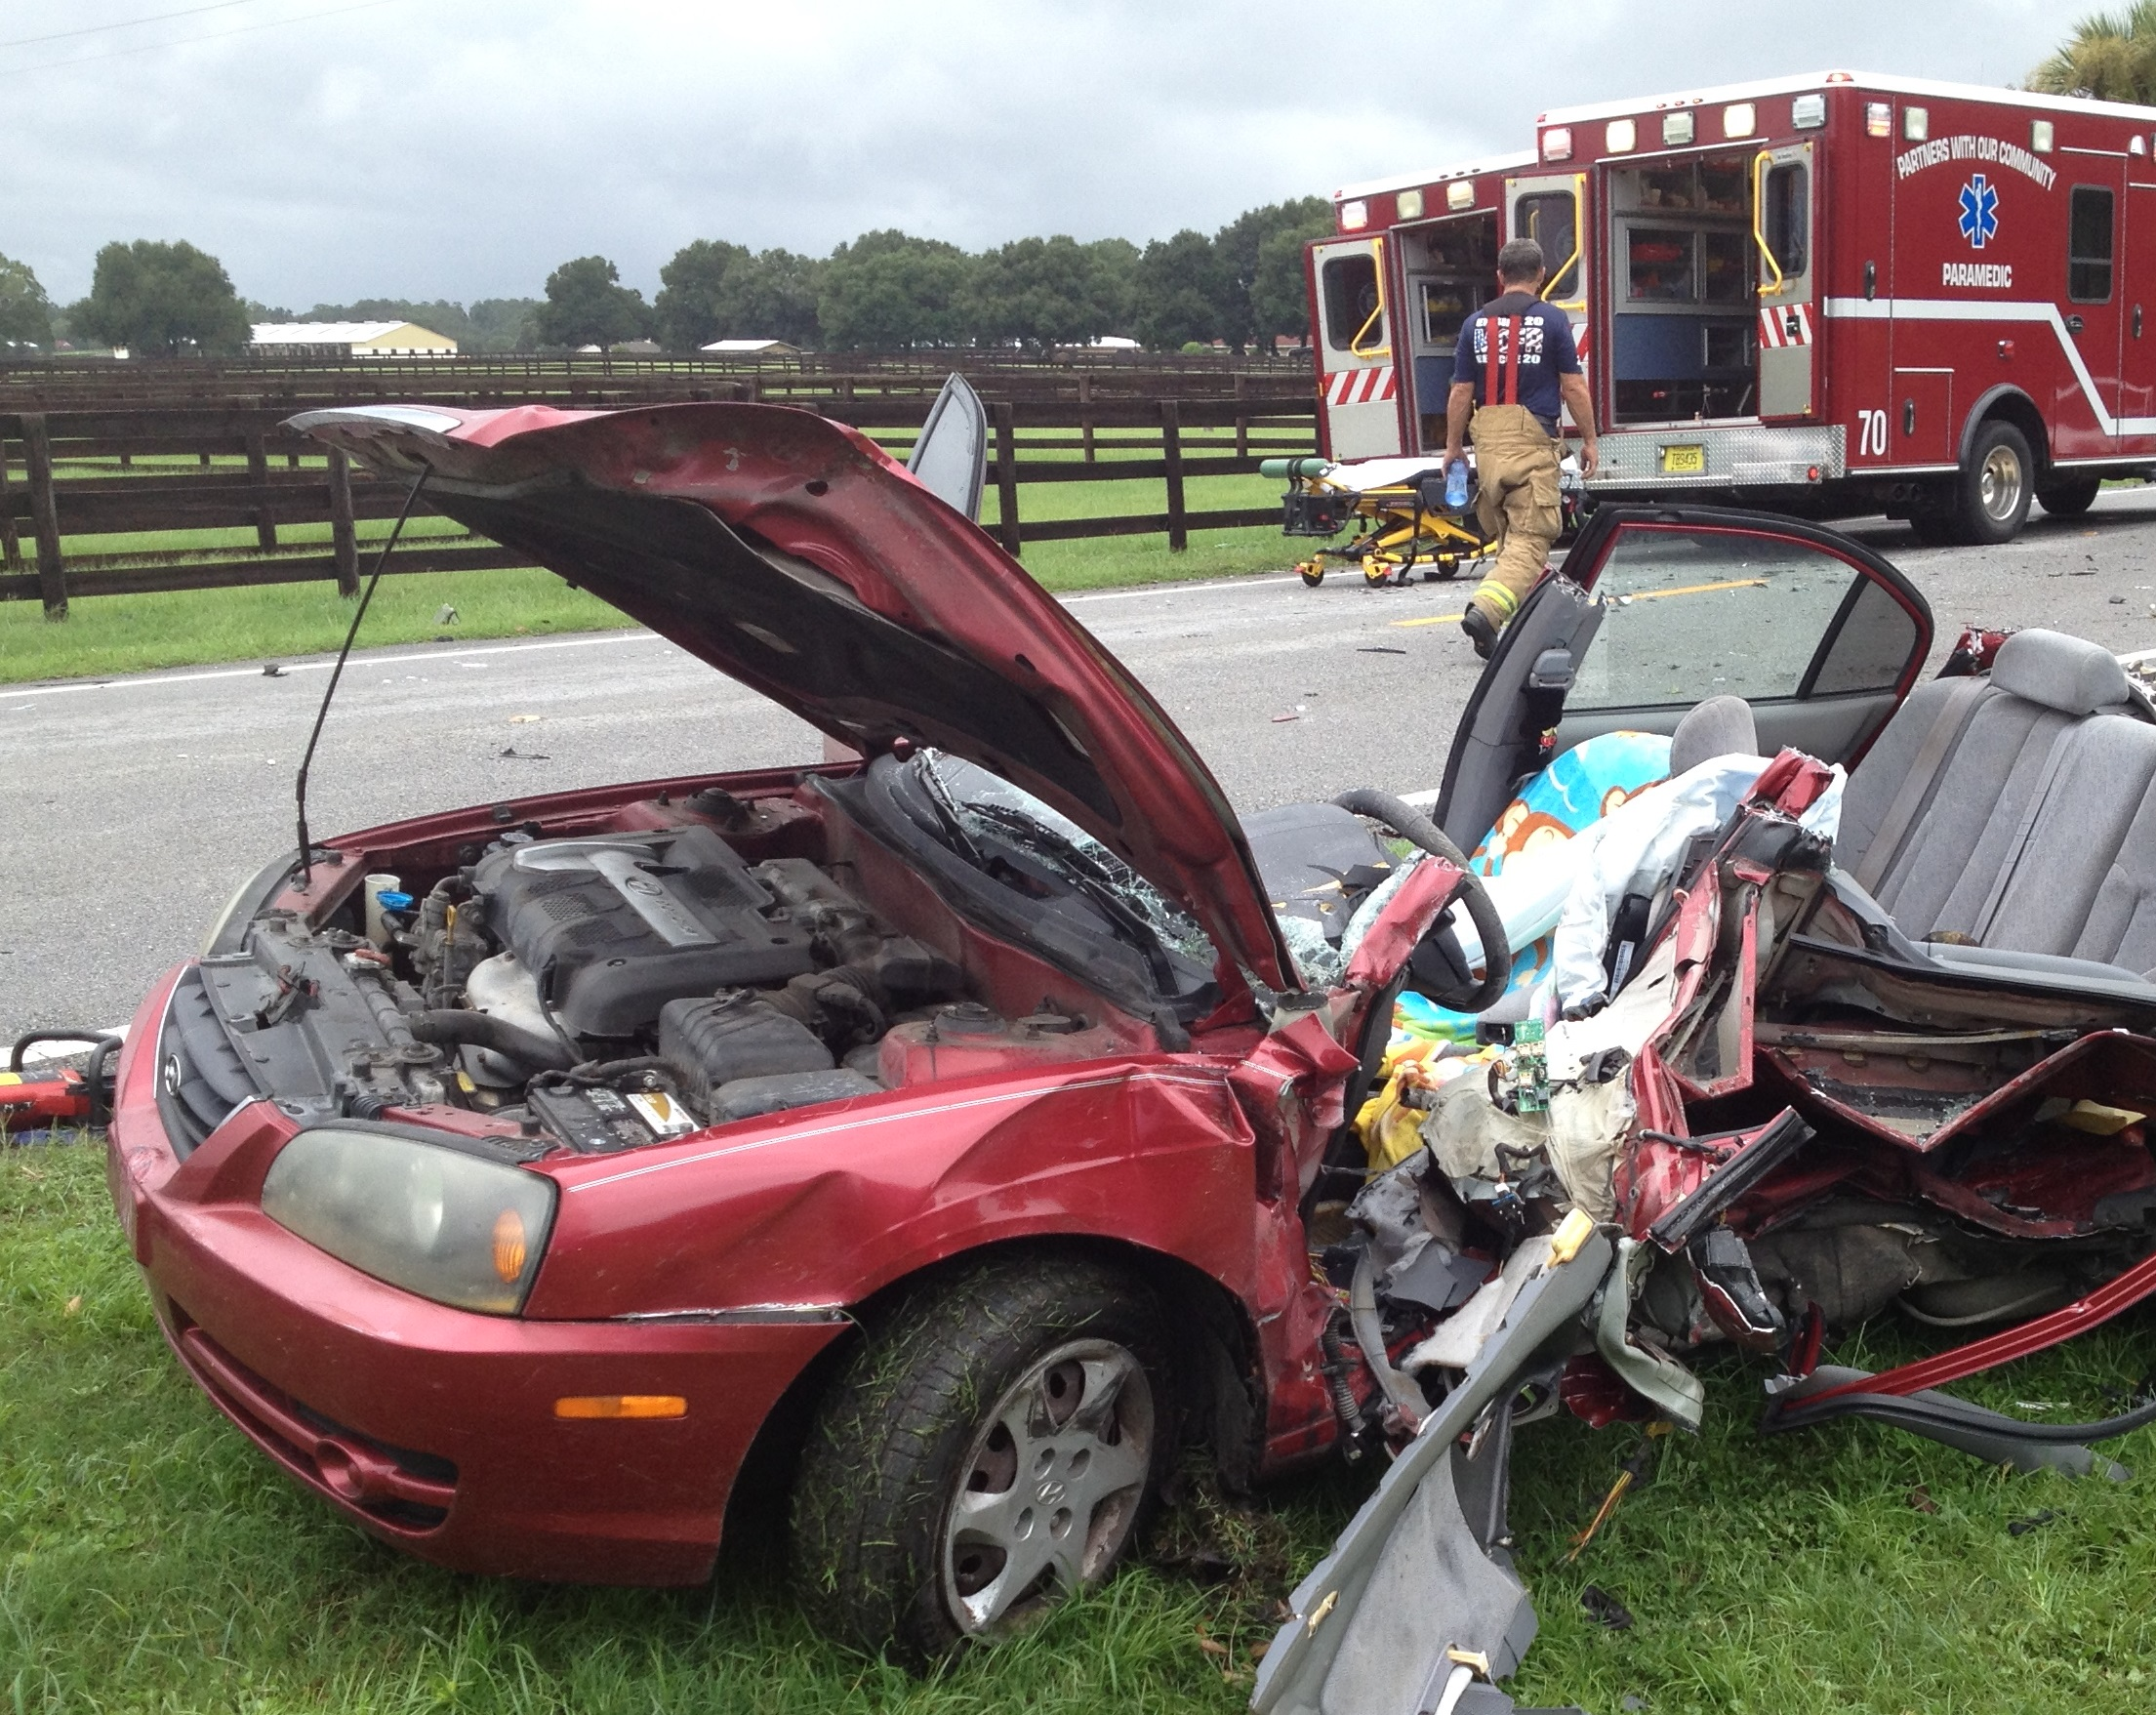 Injured In Accident Ocala Post Two Critically Injured In Accident On 225a